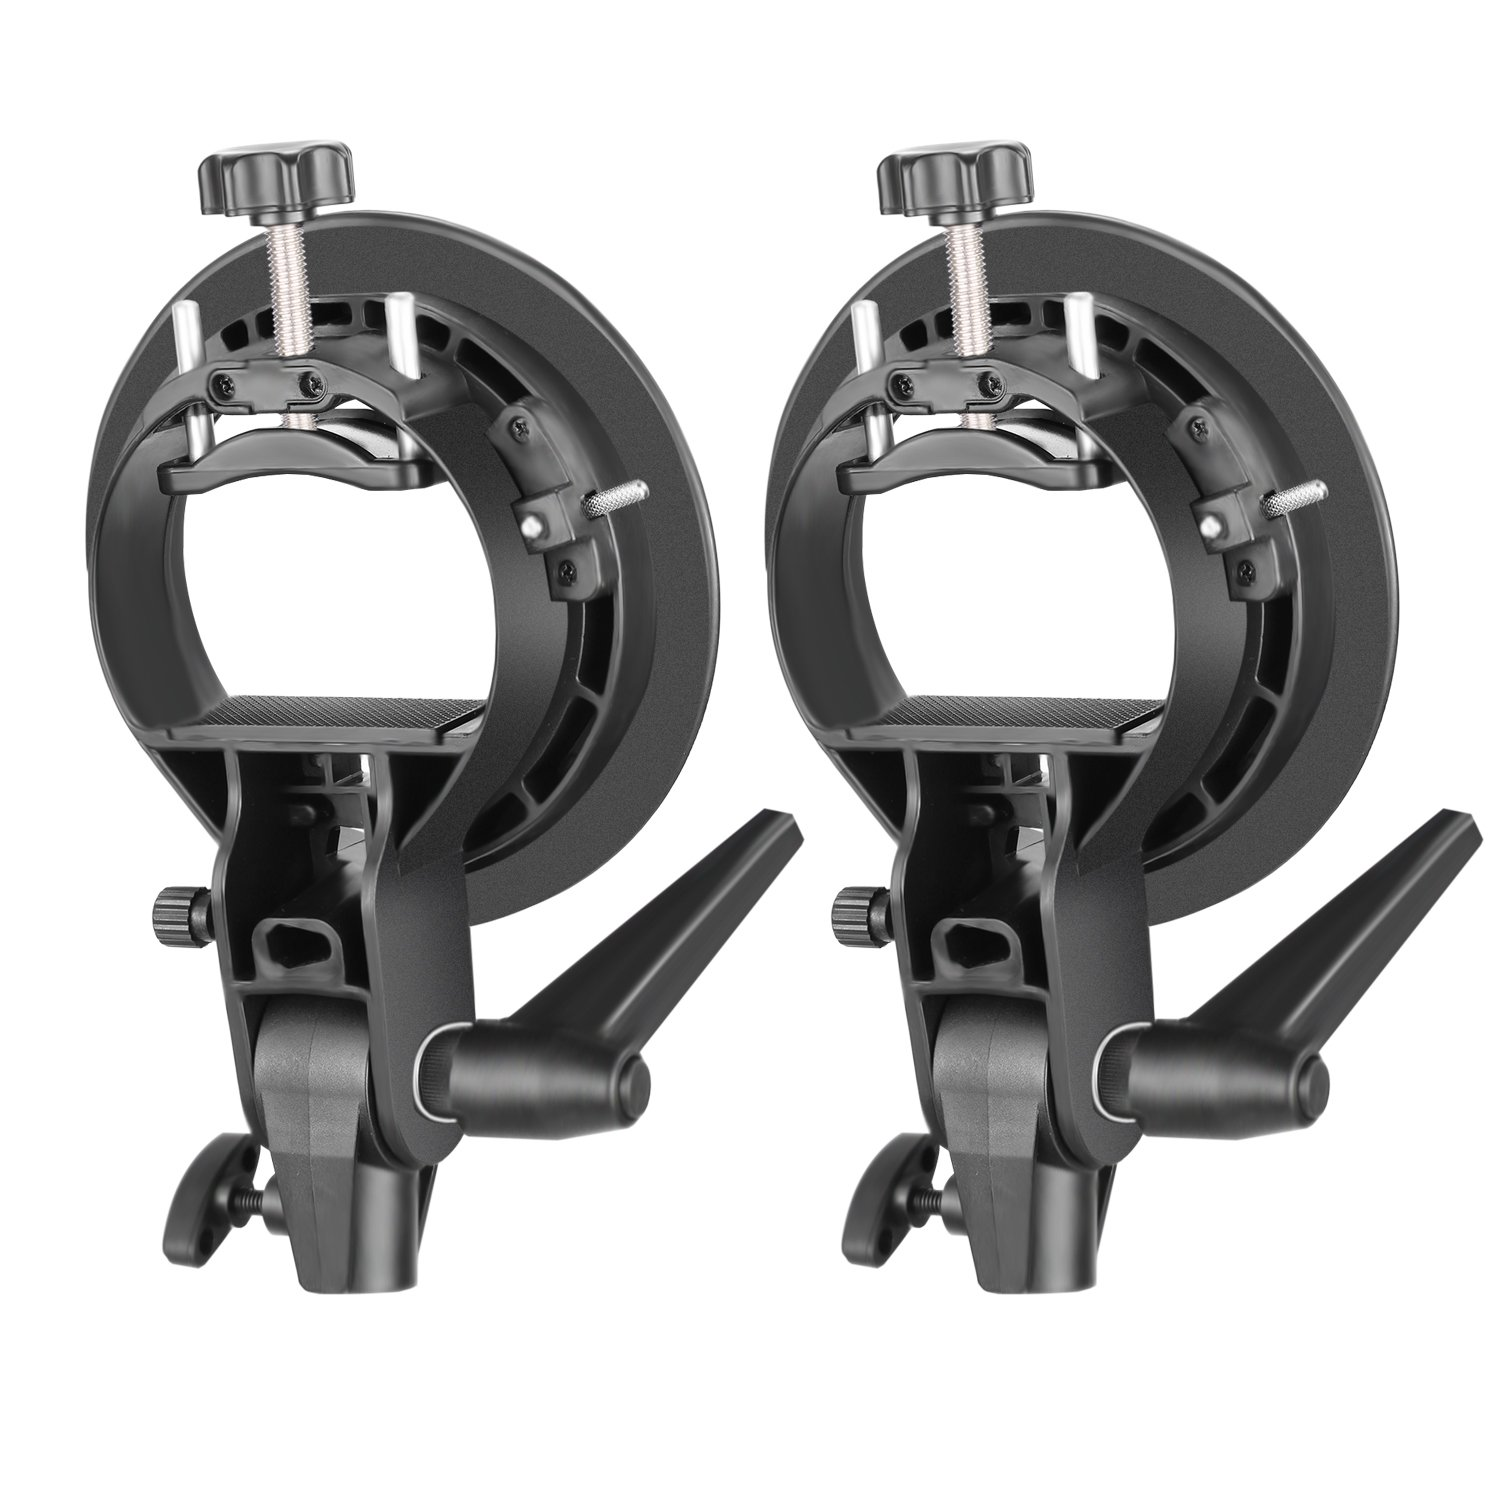 Neewer 2 Pieces S-Type Bracket Holder with Bowens Mount for Speedlite Flash Snoot Softbox Beauty Dish Reflector Umbrella by Neewer